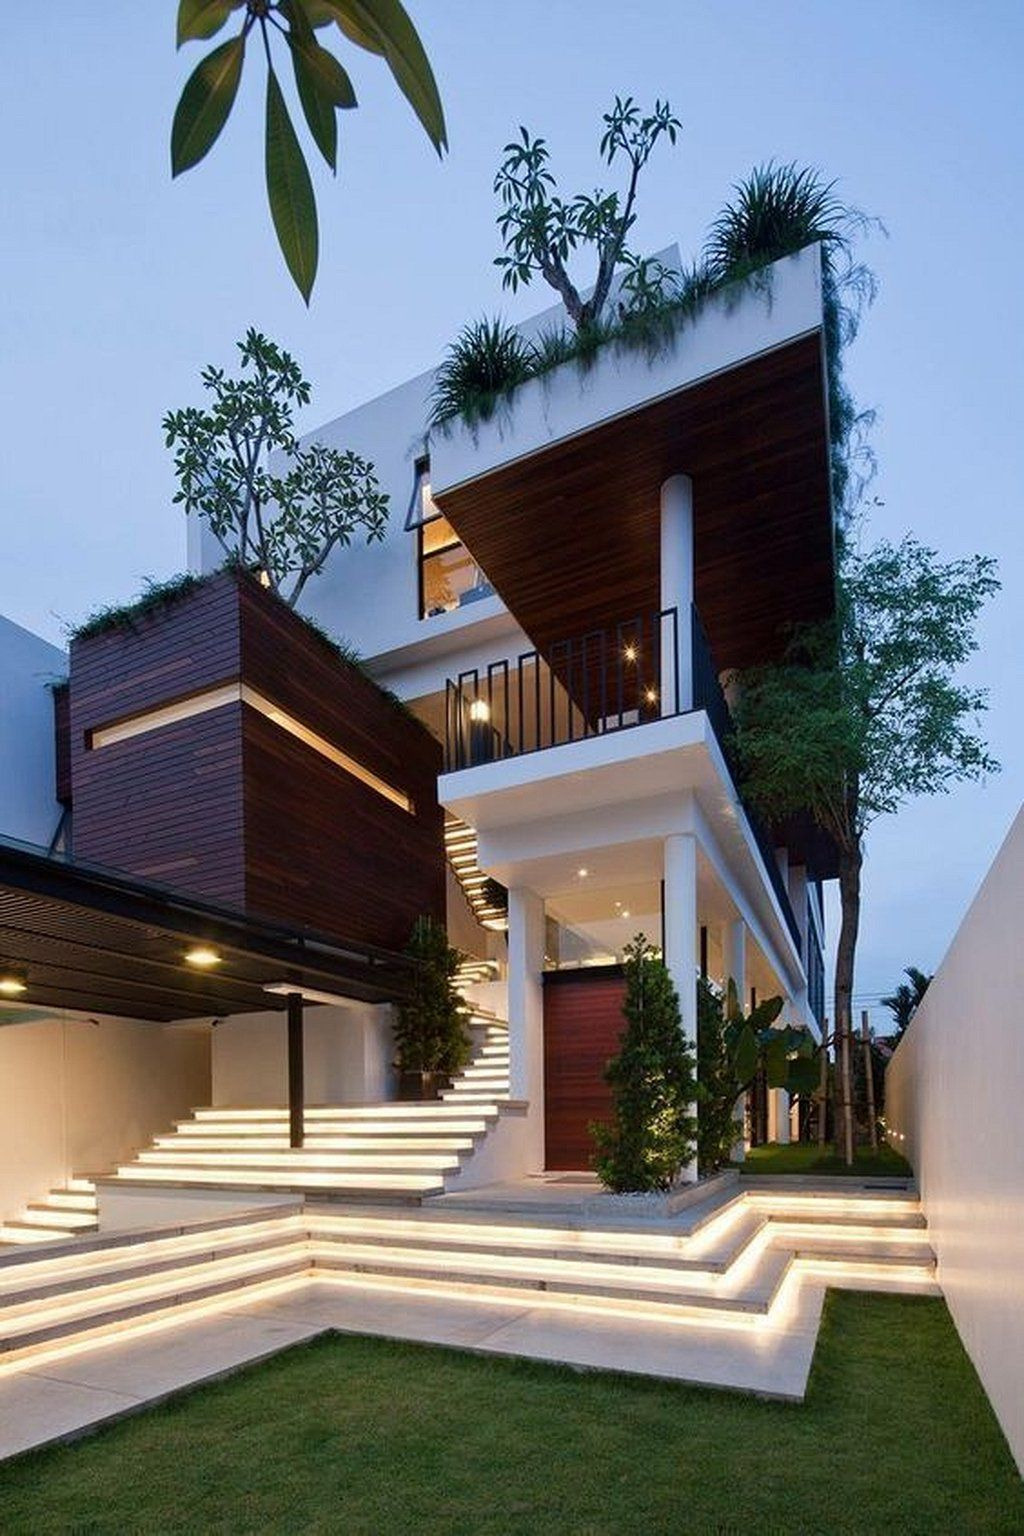 Unique Modern House Designs Inspirational 21 the Most Unique Modern Home Design In the World [new